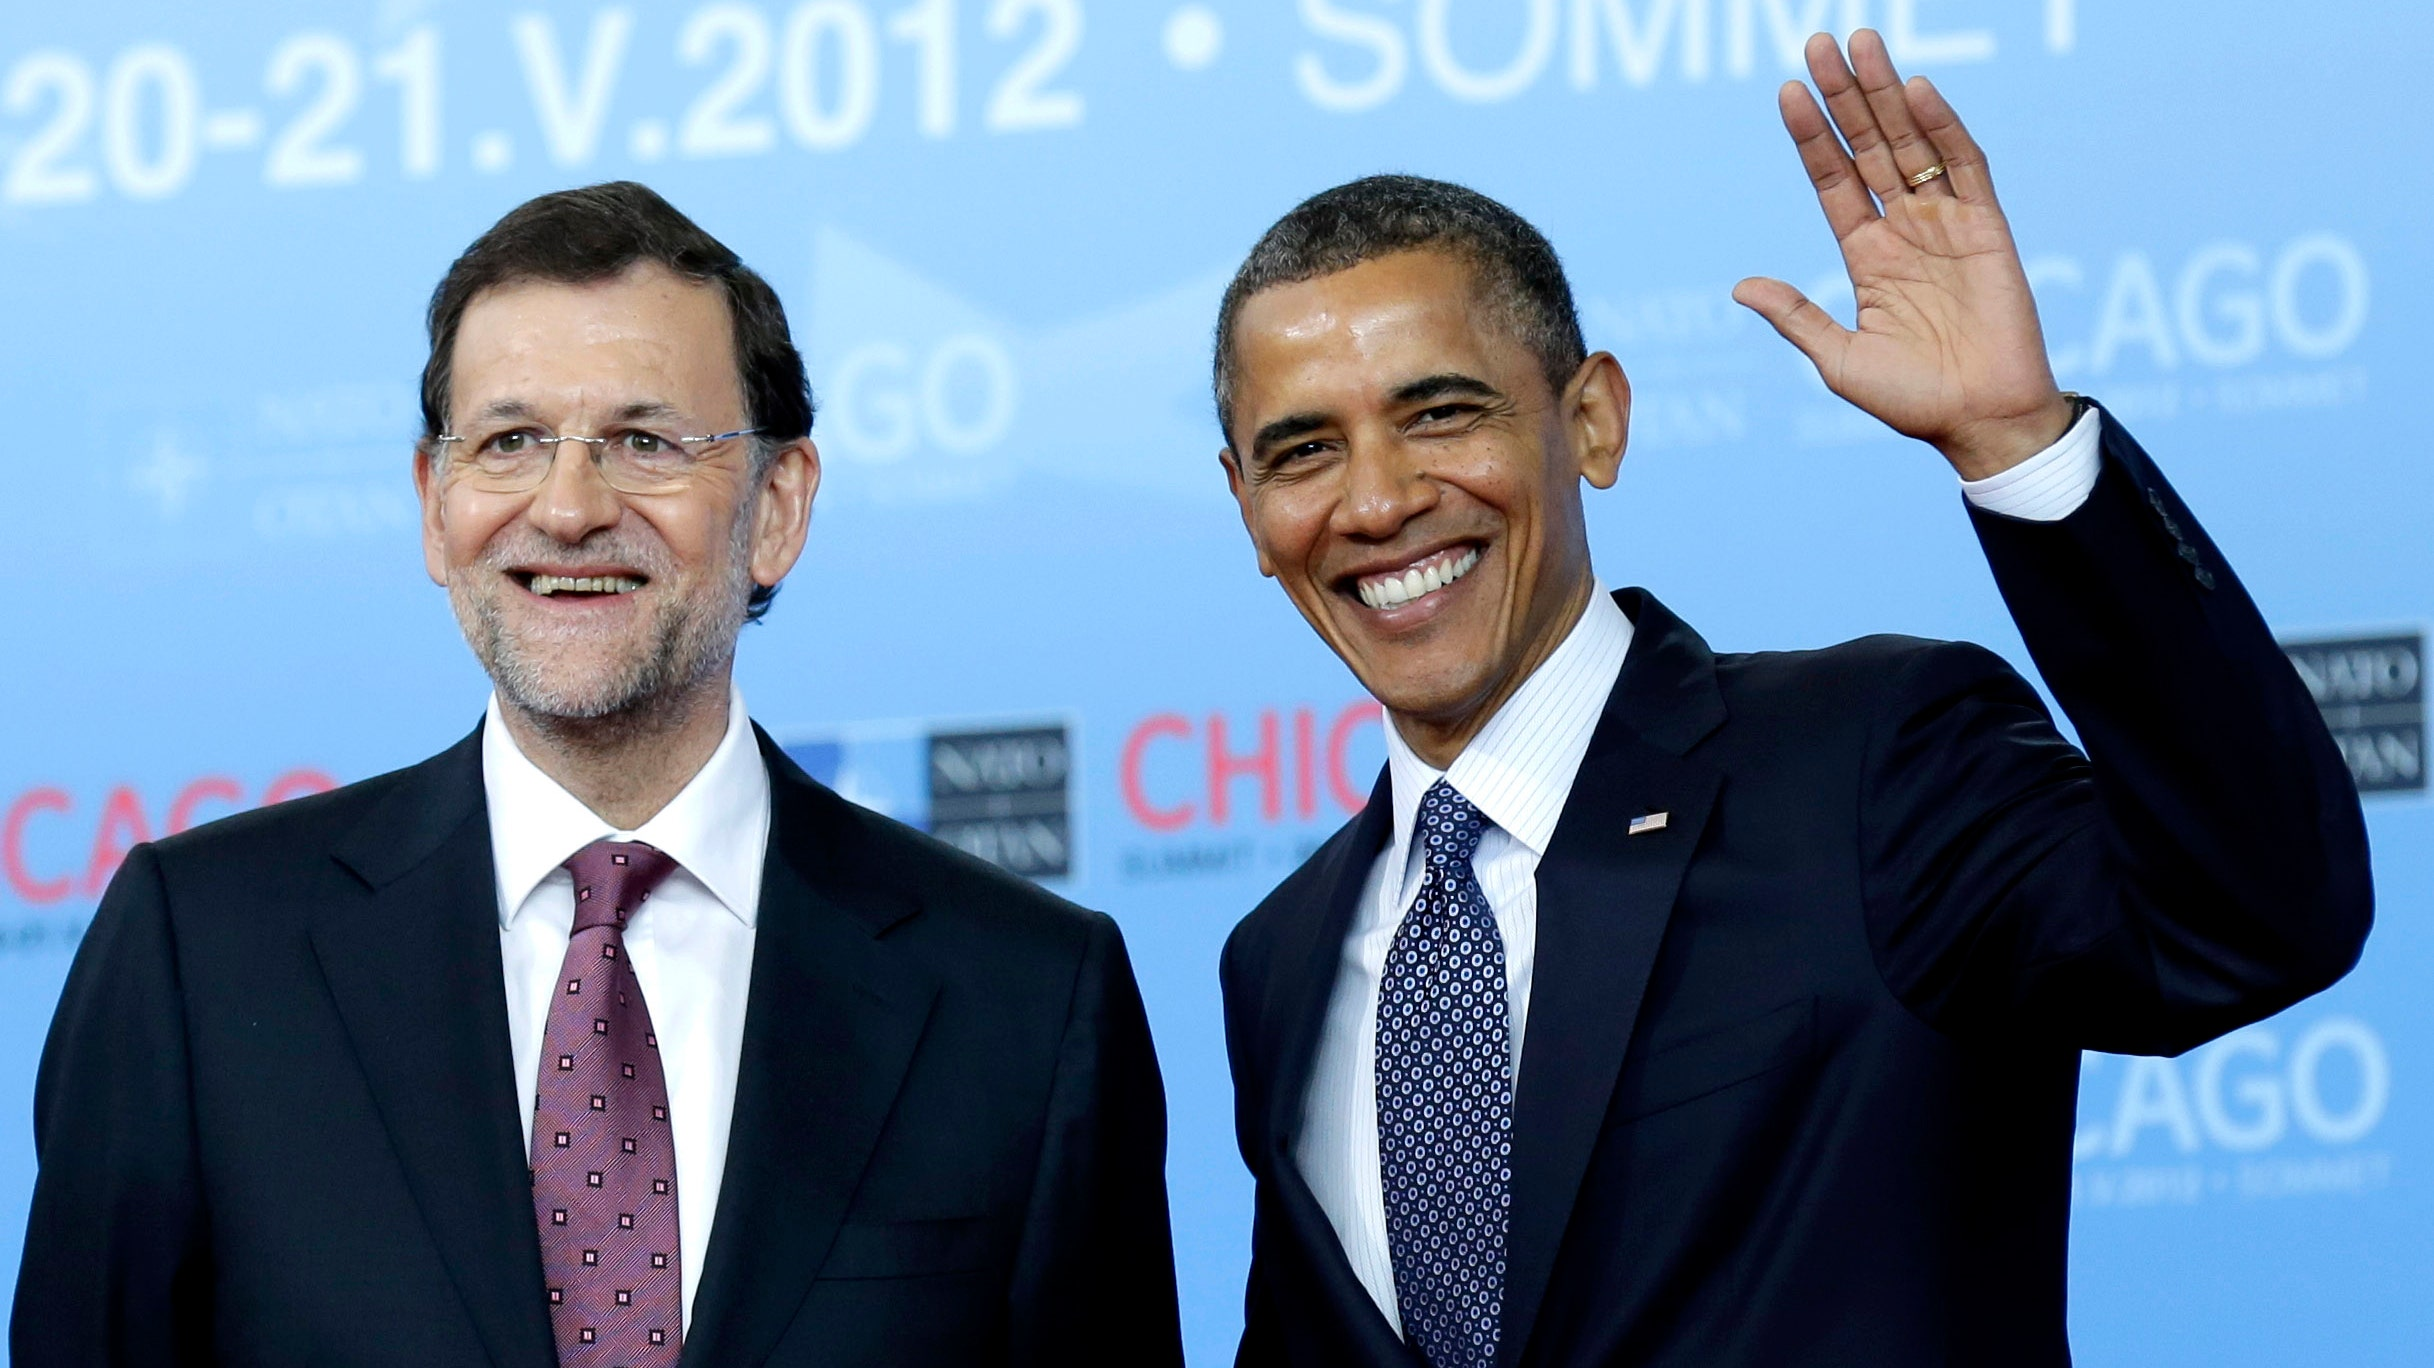 President barack obama to meet with spanish prime minister mariano president barack obama to meet with spanish prime minister mariano rajoy fox news latino m4hsunfo Image collections